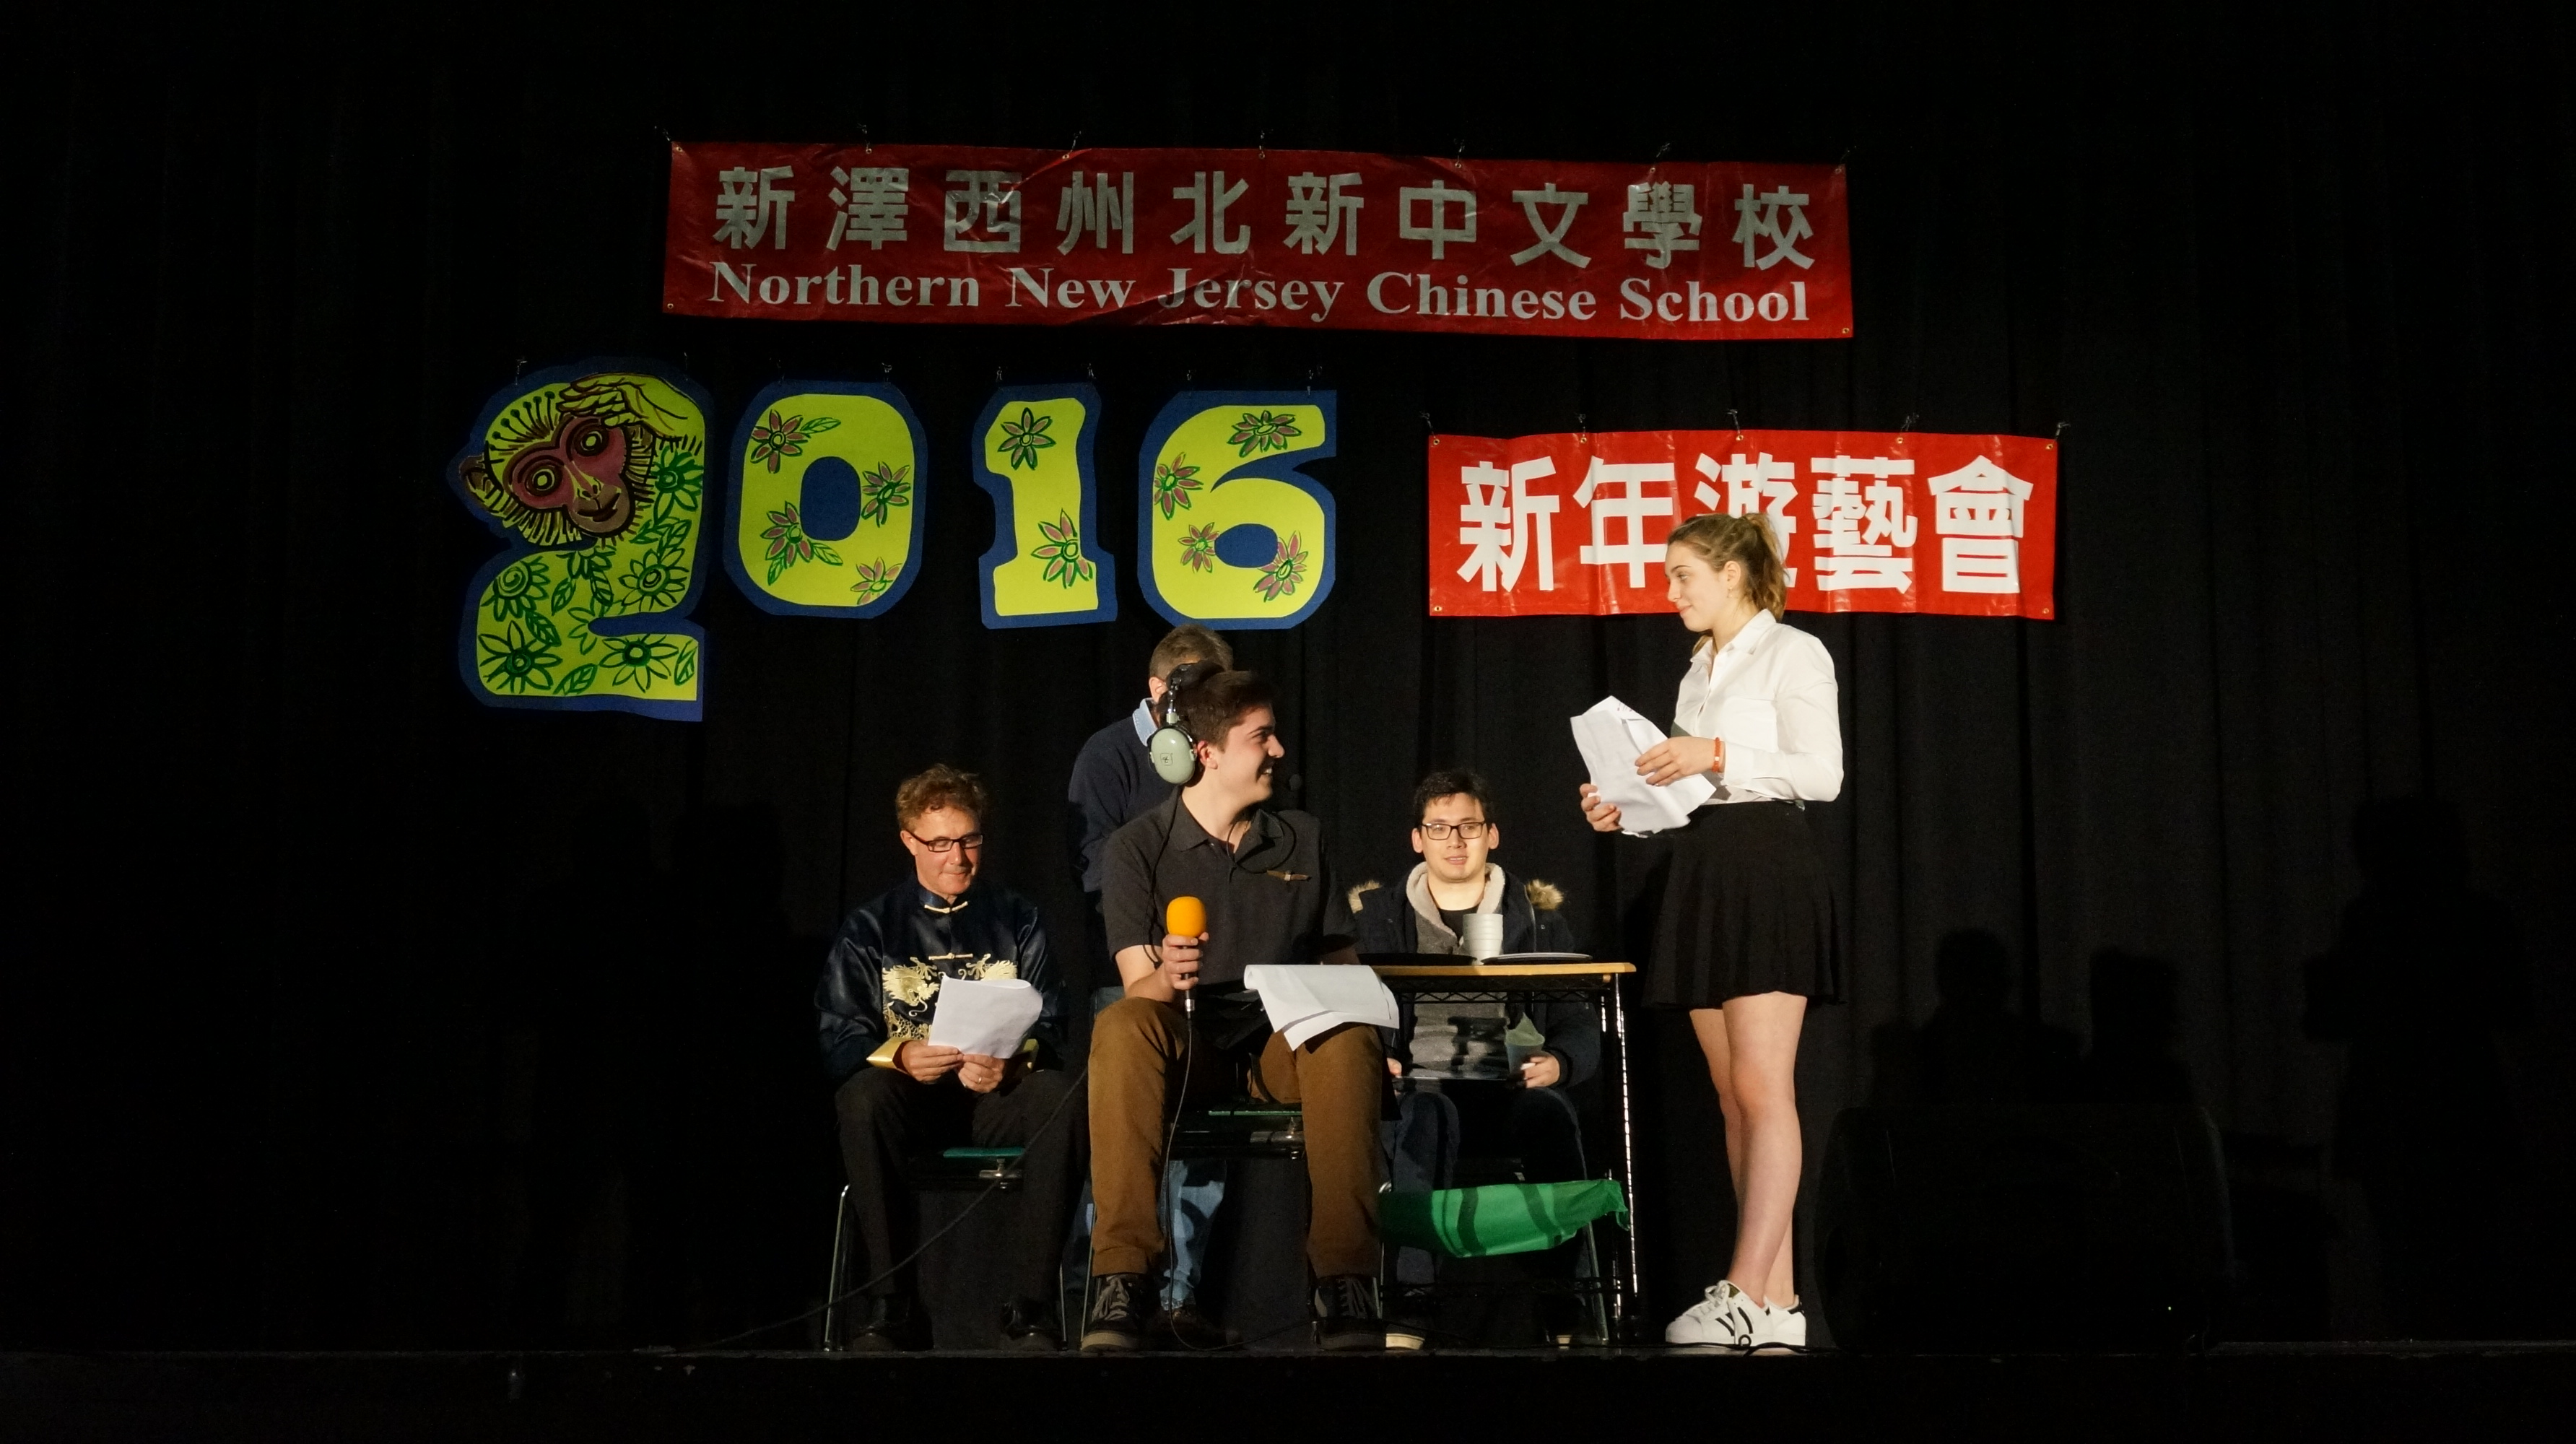 bbea7d19c2b3cf1af1ef_aaa_Chinese_New_Year_pix_270.JPG